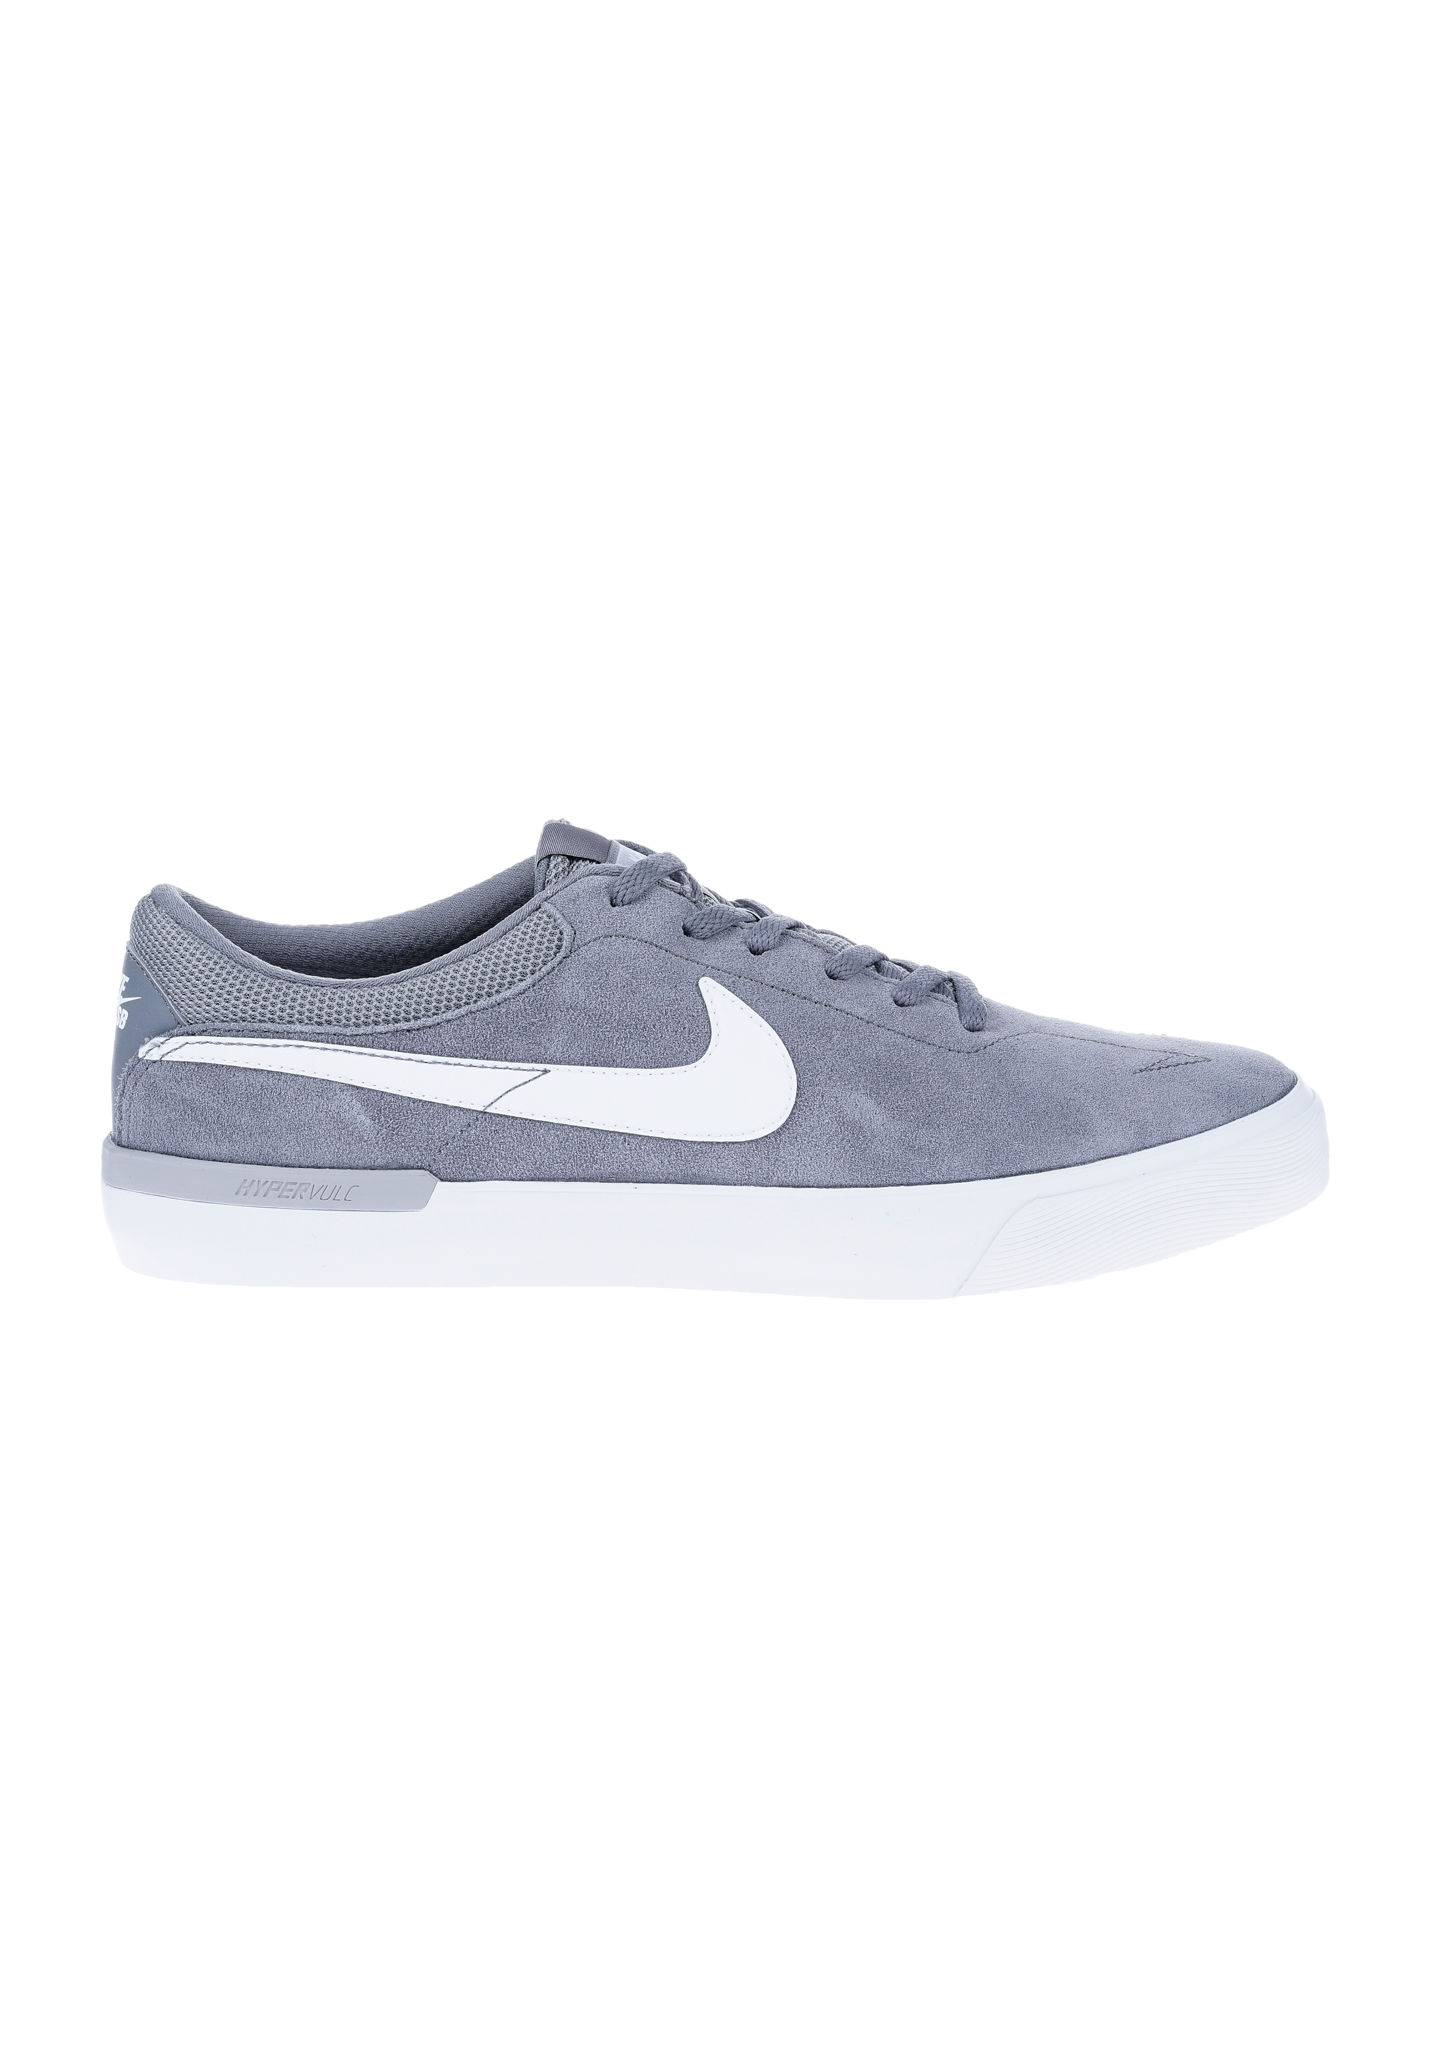 a9d4d77005b NIKE SB Koston Hypervulc - Sneakers for Men - Grey - Planet Sports